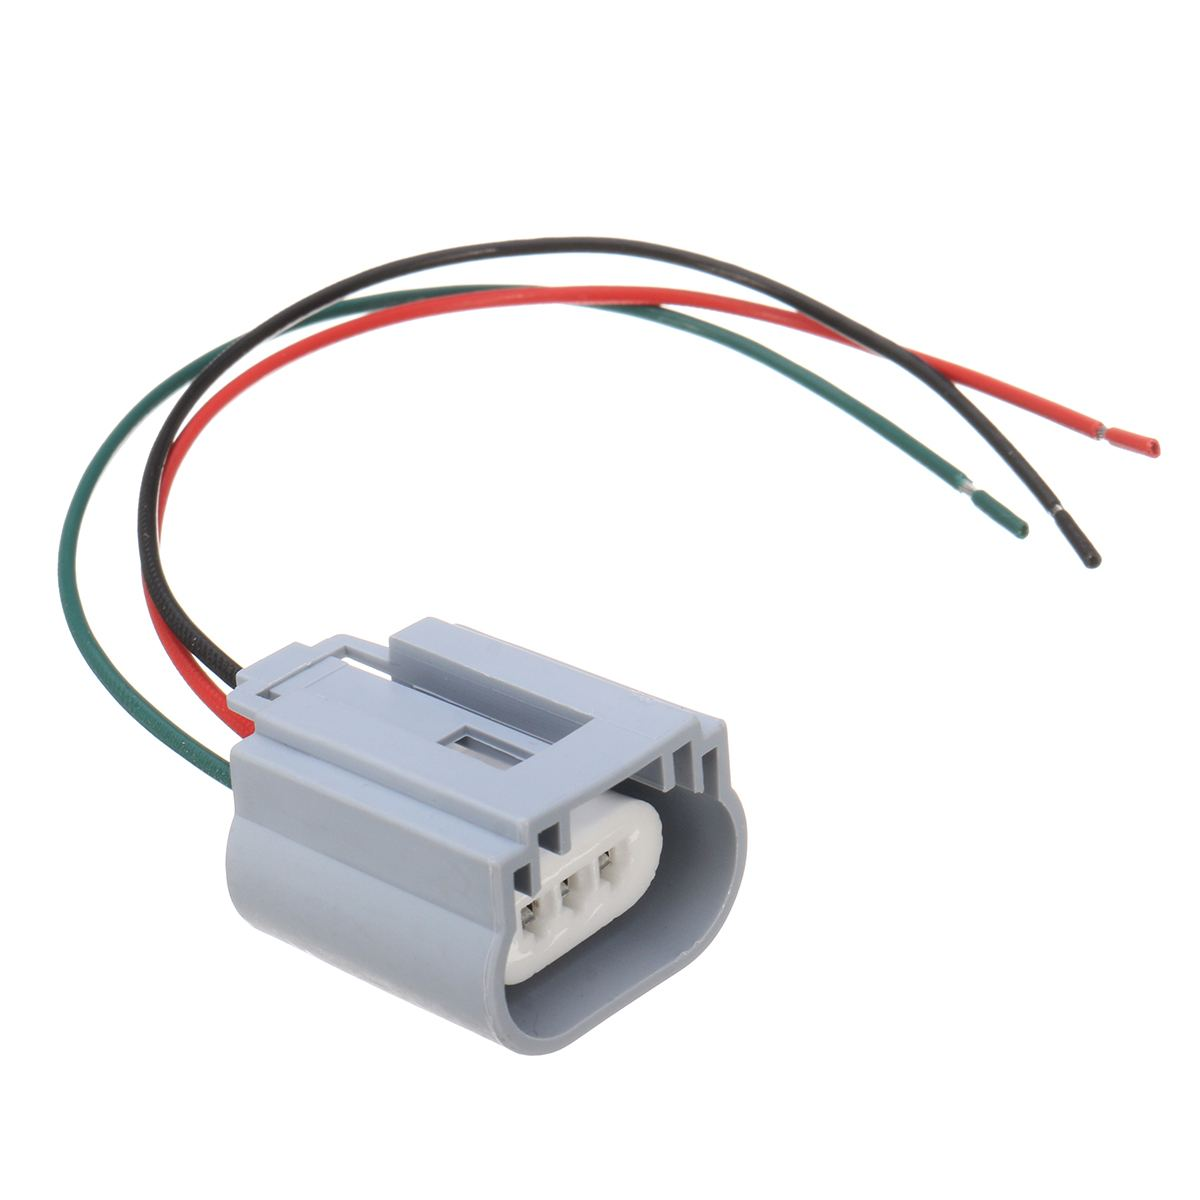 2 x H13 Male Plug to H13 Female Socket Converter Cable Harness Connector Adapter